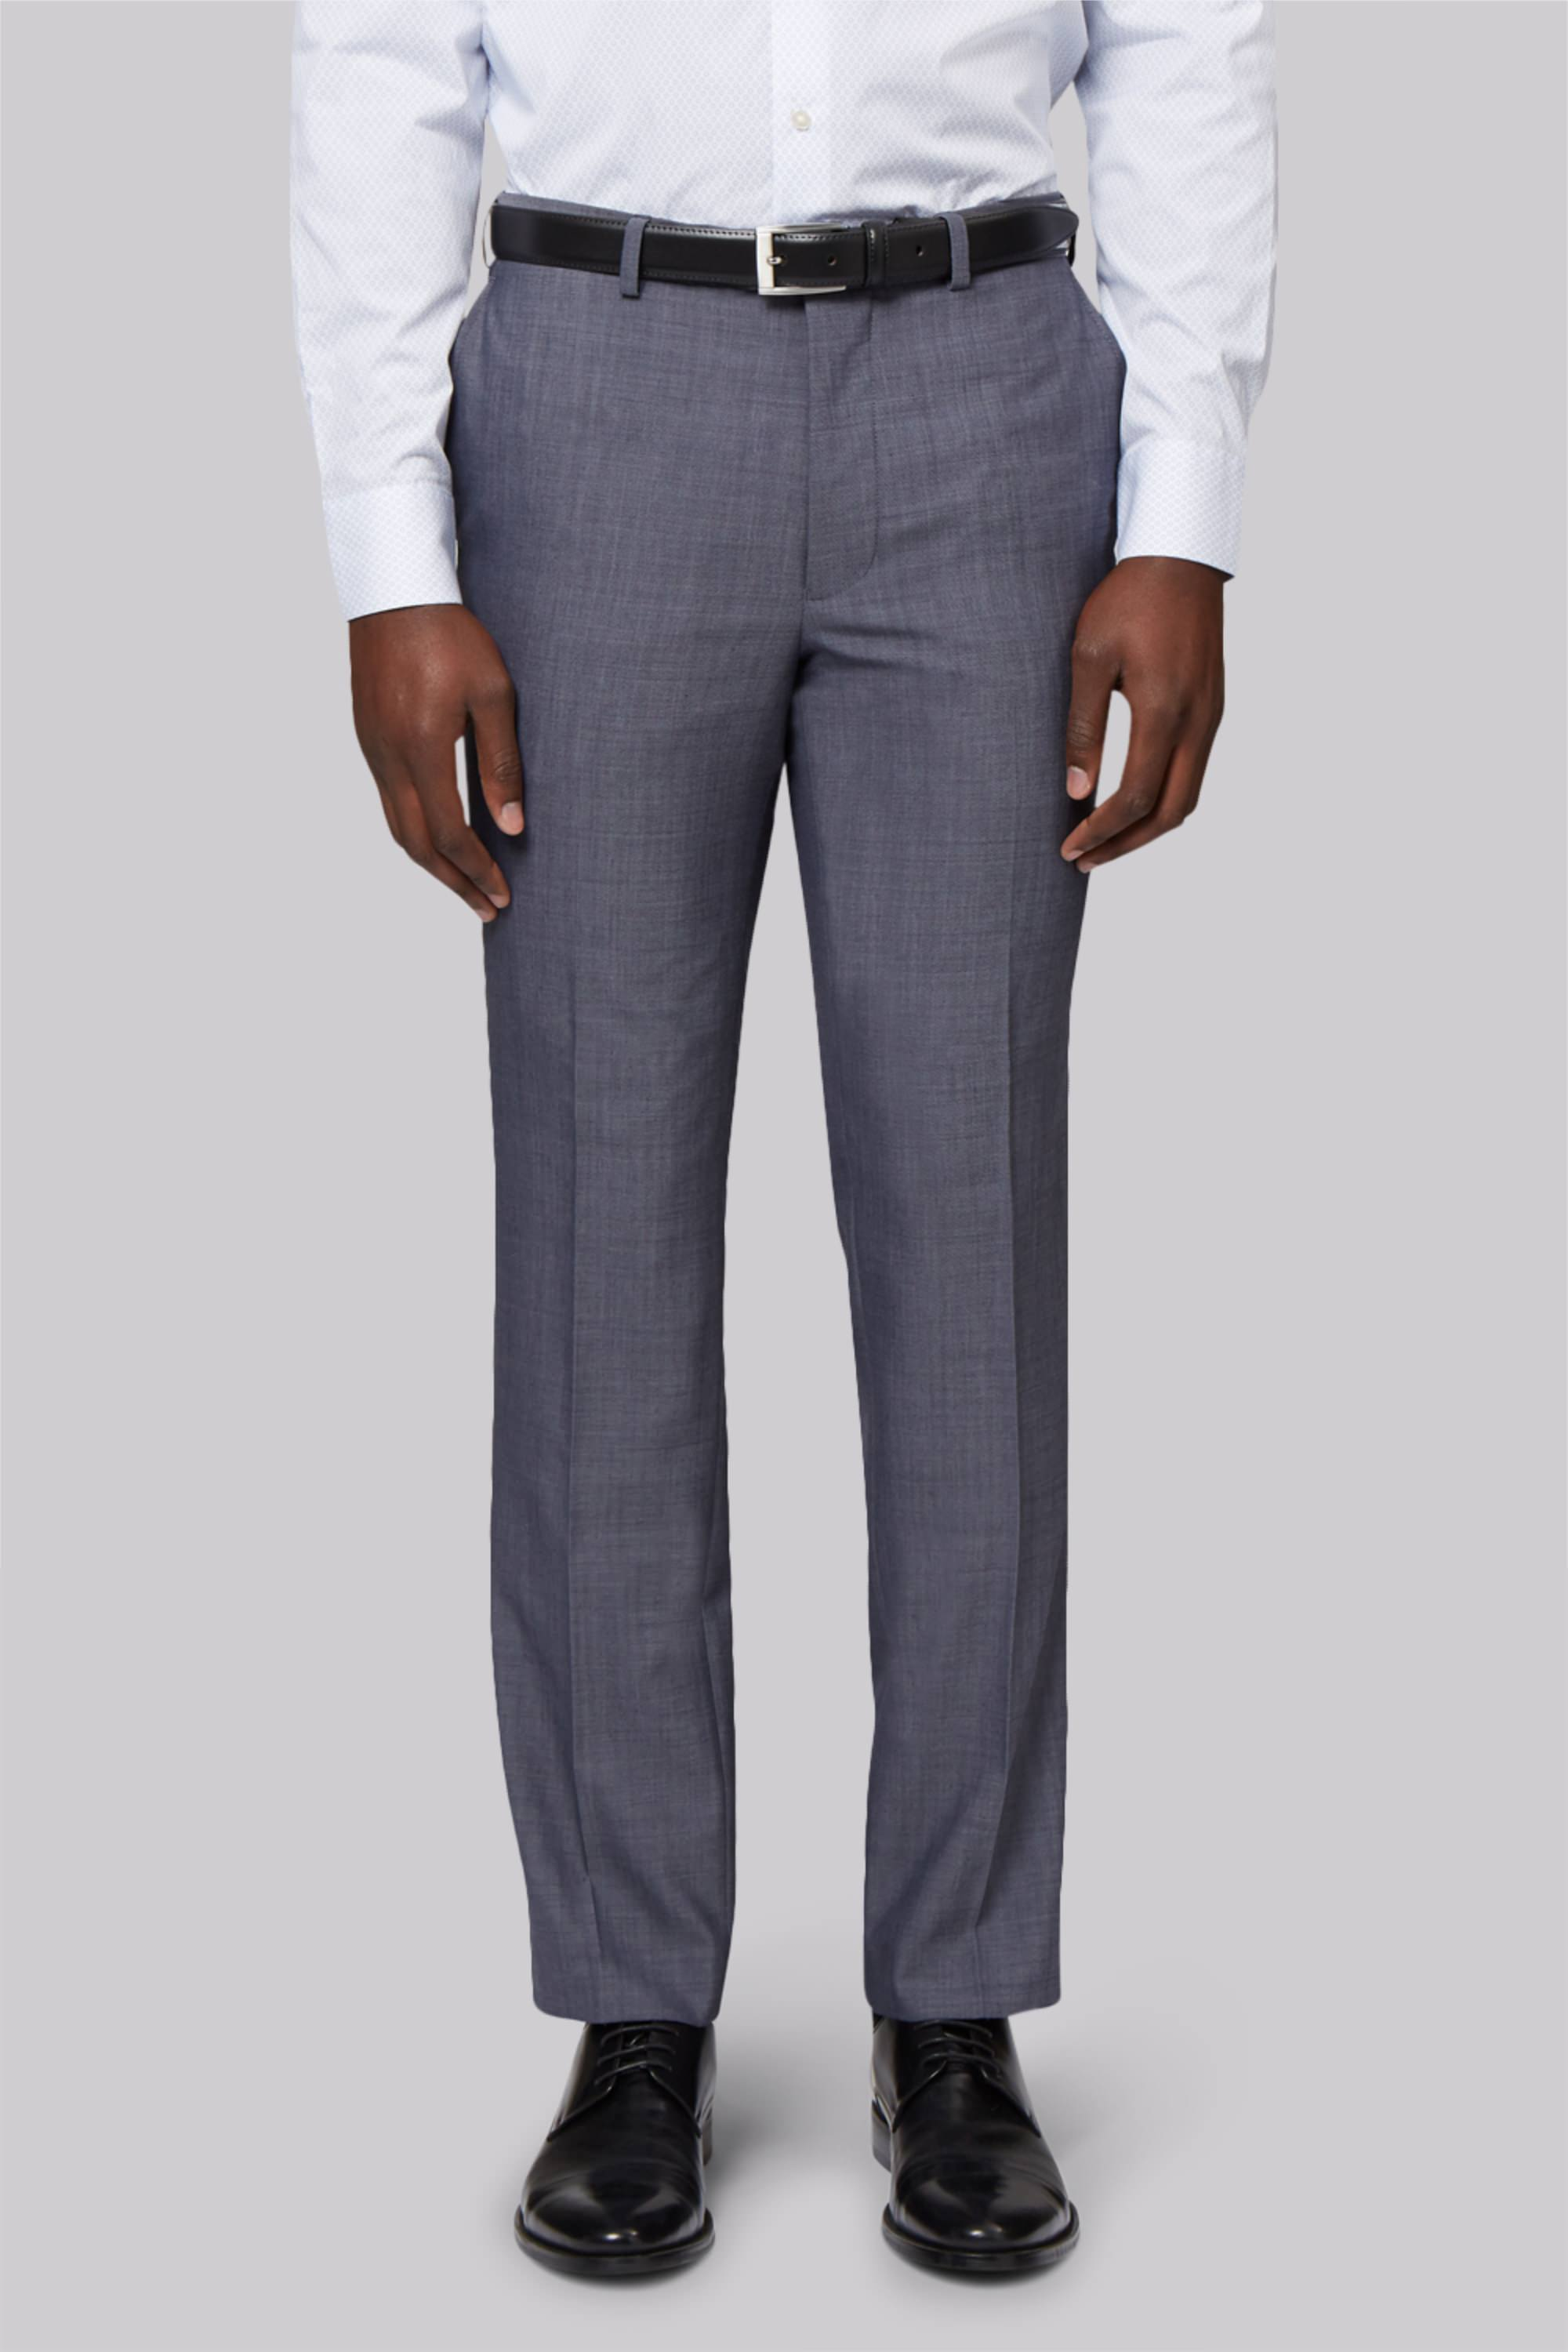 W ool pants and trousers are an essential item because they're the middle ground between jeans/chinos and a full suit. In situations when jeans or chinos might be a bit too informal and a suit is overkill, the wool pant/trouser fits this spot perfectly.